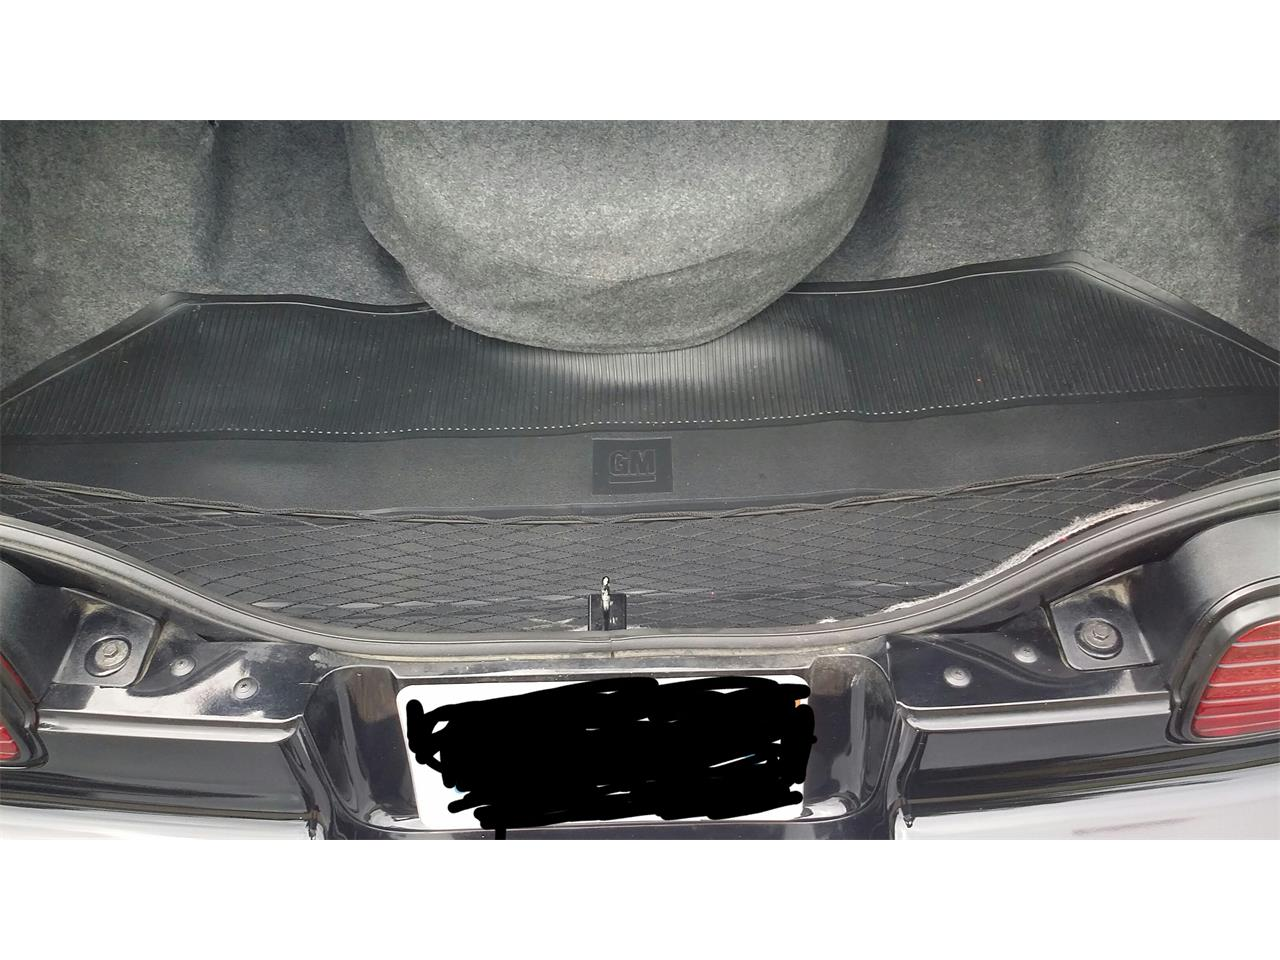 Large Picture of '96 Chevrolet Impala SS - $14,250.00 Offered by a Private Seller - J25Y